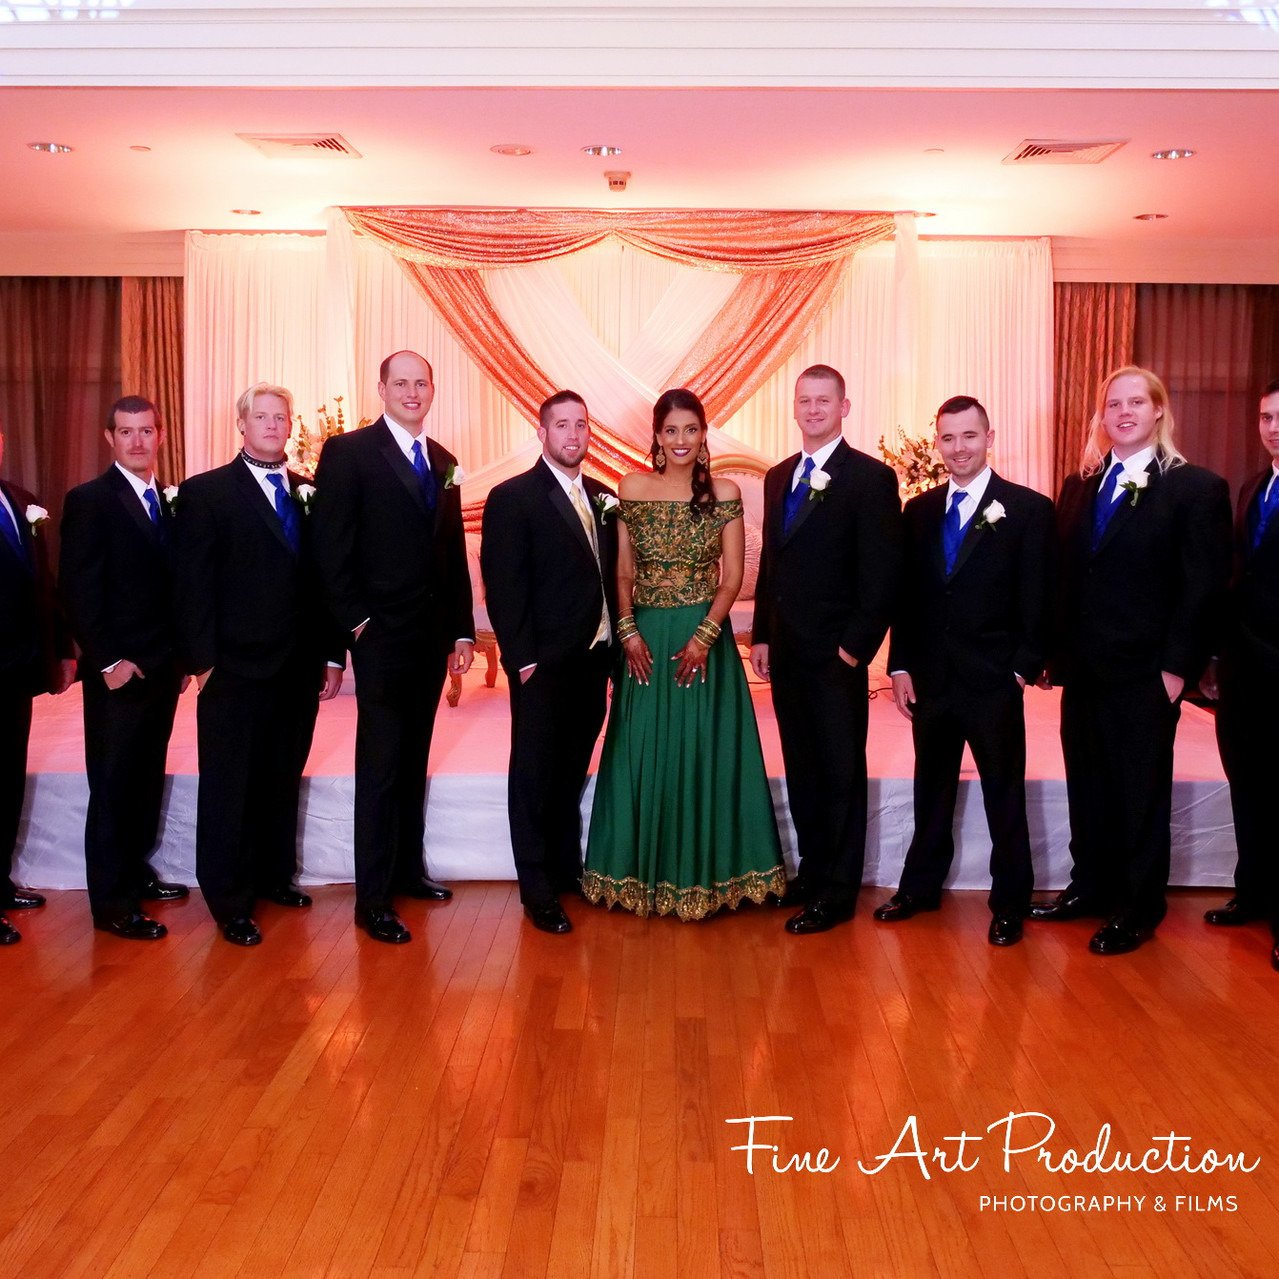 Pine-Crest-Country-Club-Indian-Wedding-Reception-Photography-Fine-Art-Production-Amish-Thakkar_12